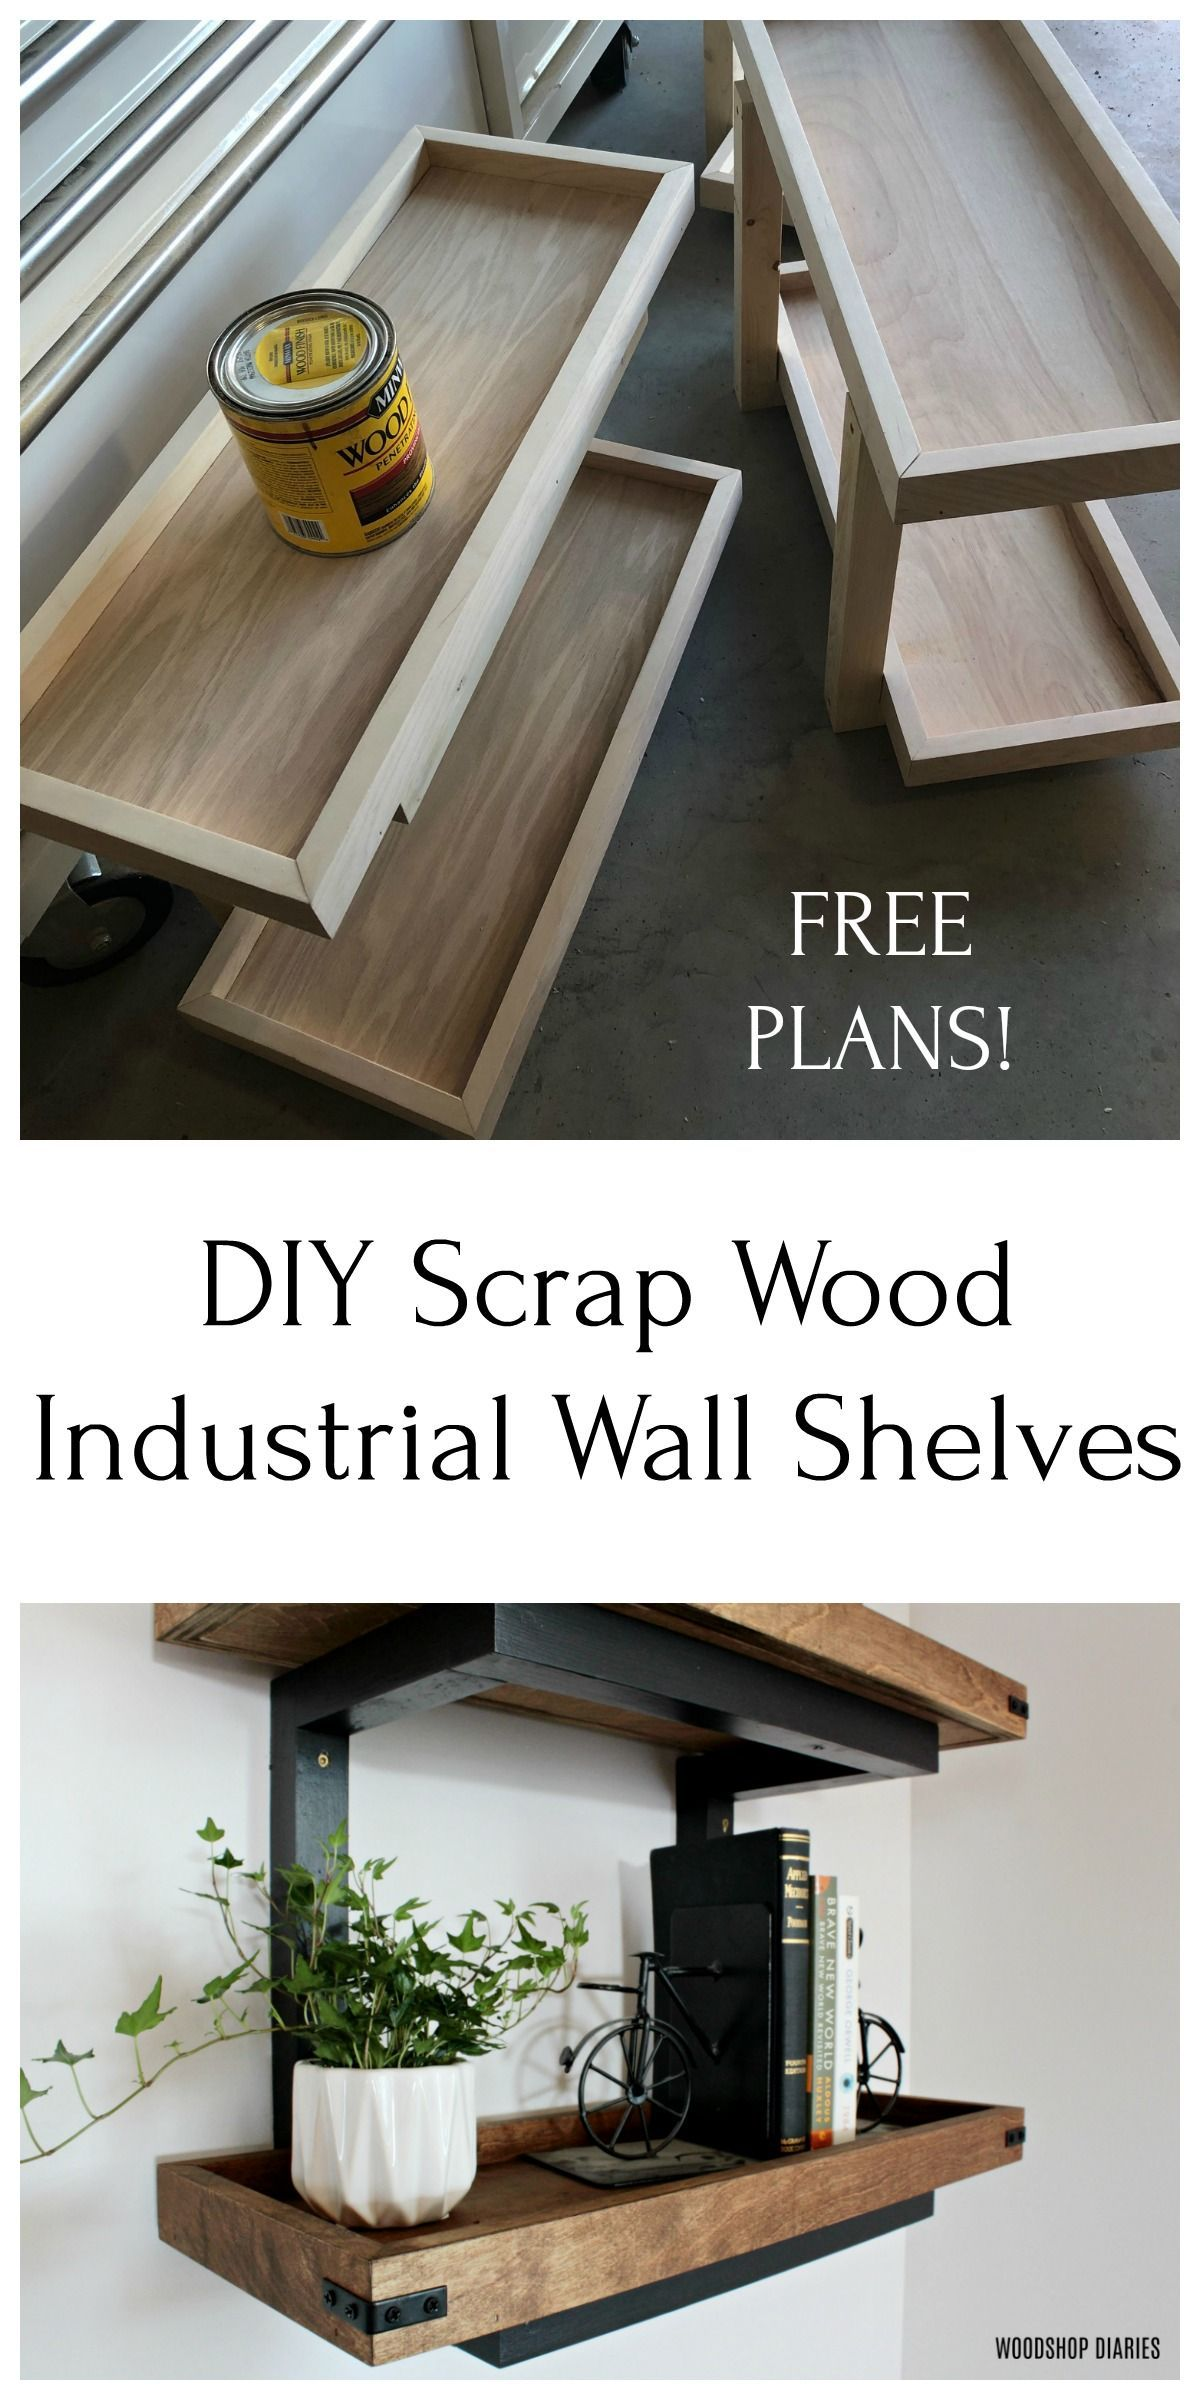 Build your own industrial style wall shelves from scrap